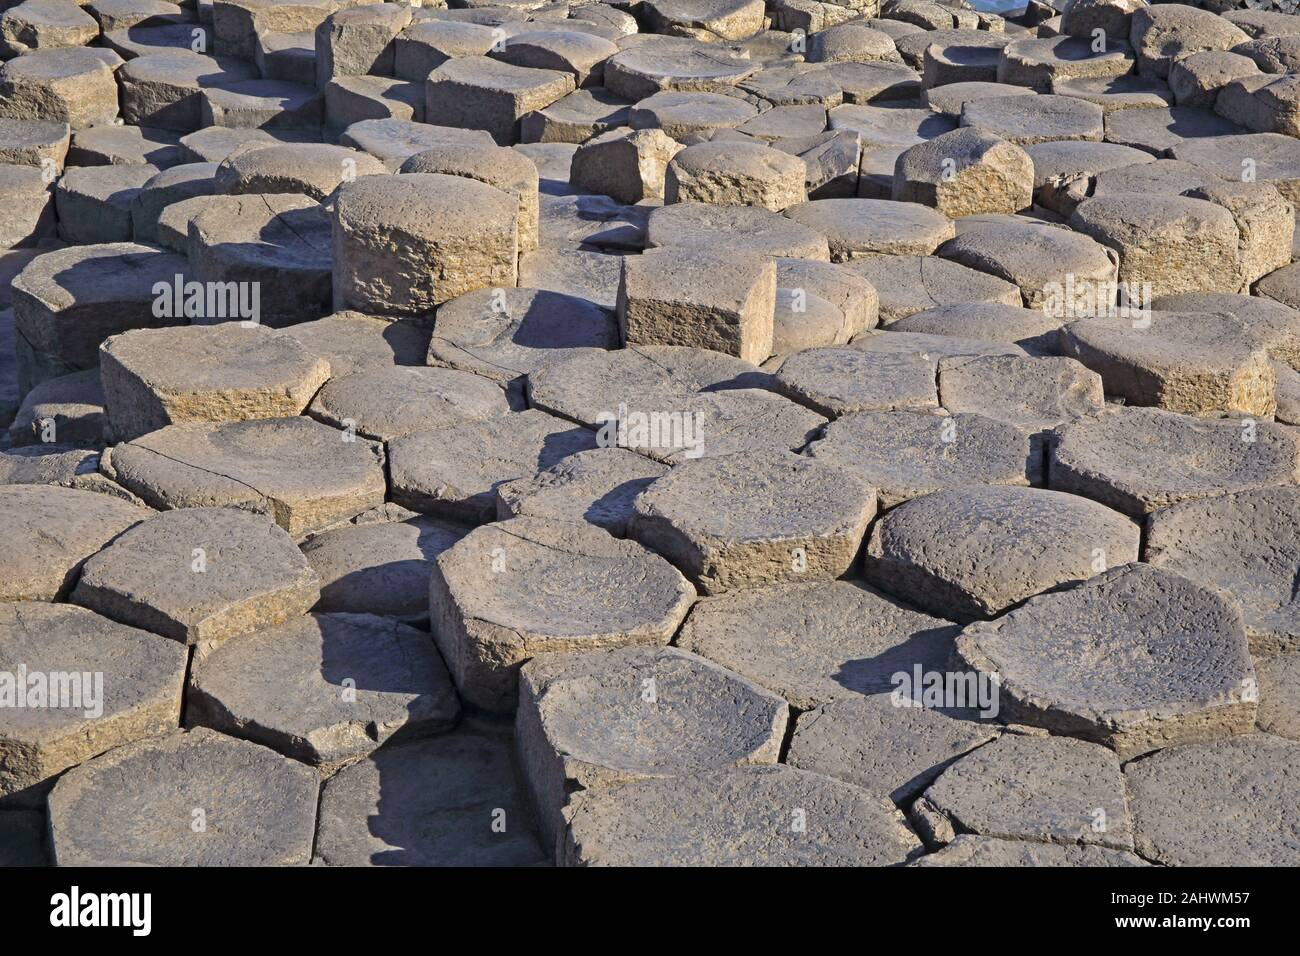 Basalt pavement created by tops of the massive basalt columns of the Giant's Causeway, County Antrim, Northern Ireland, UK. Stock Photo